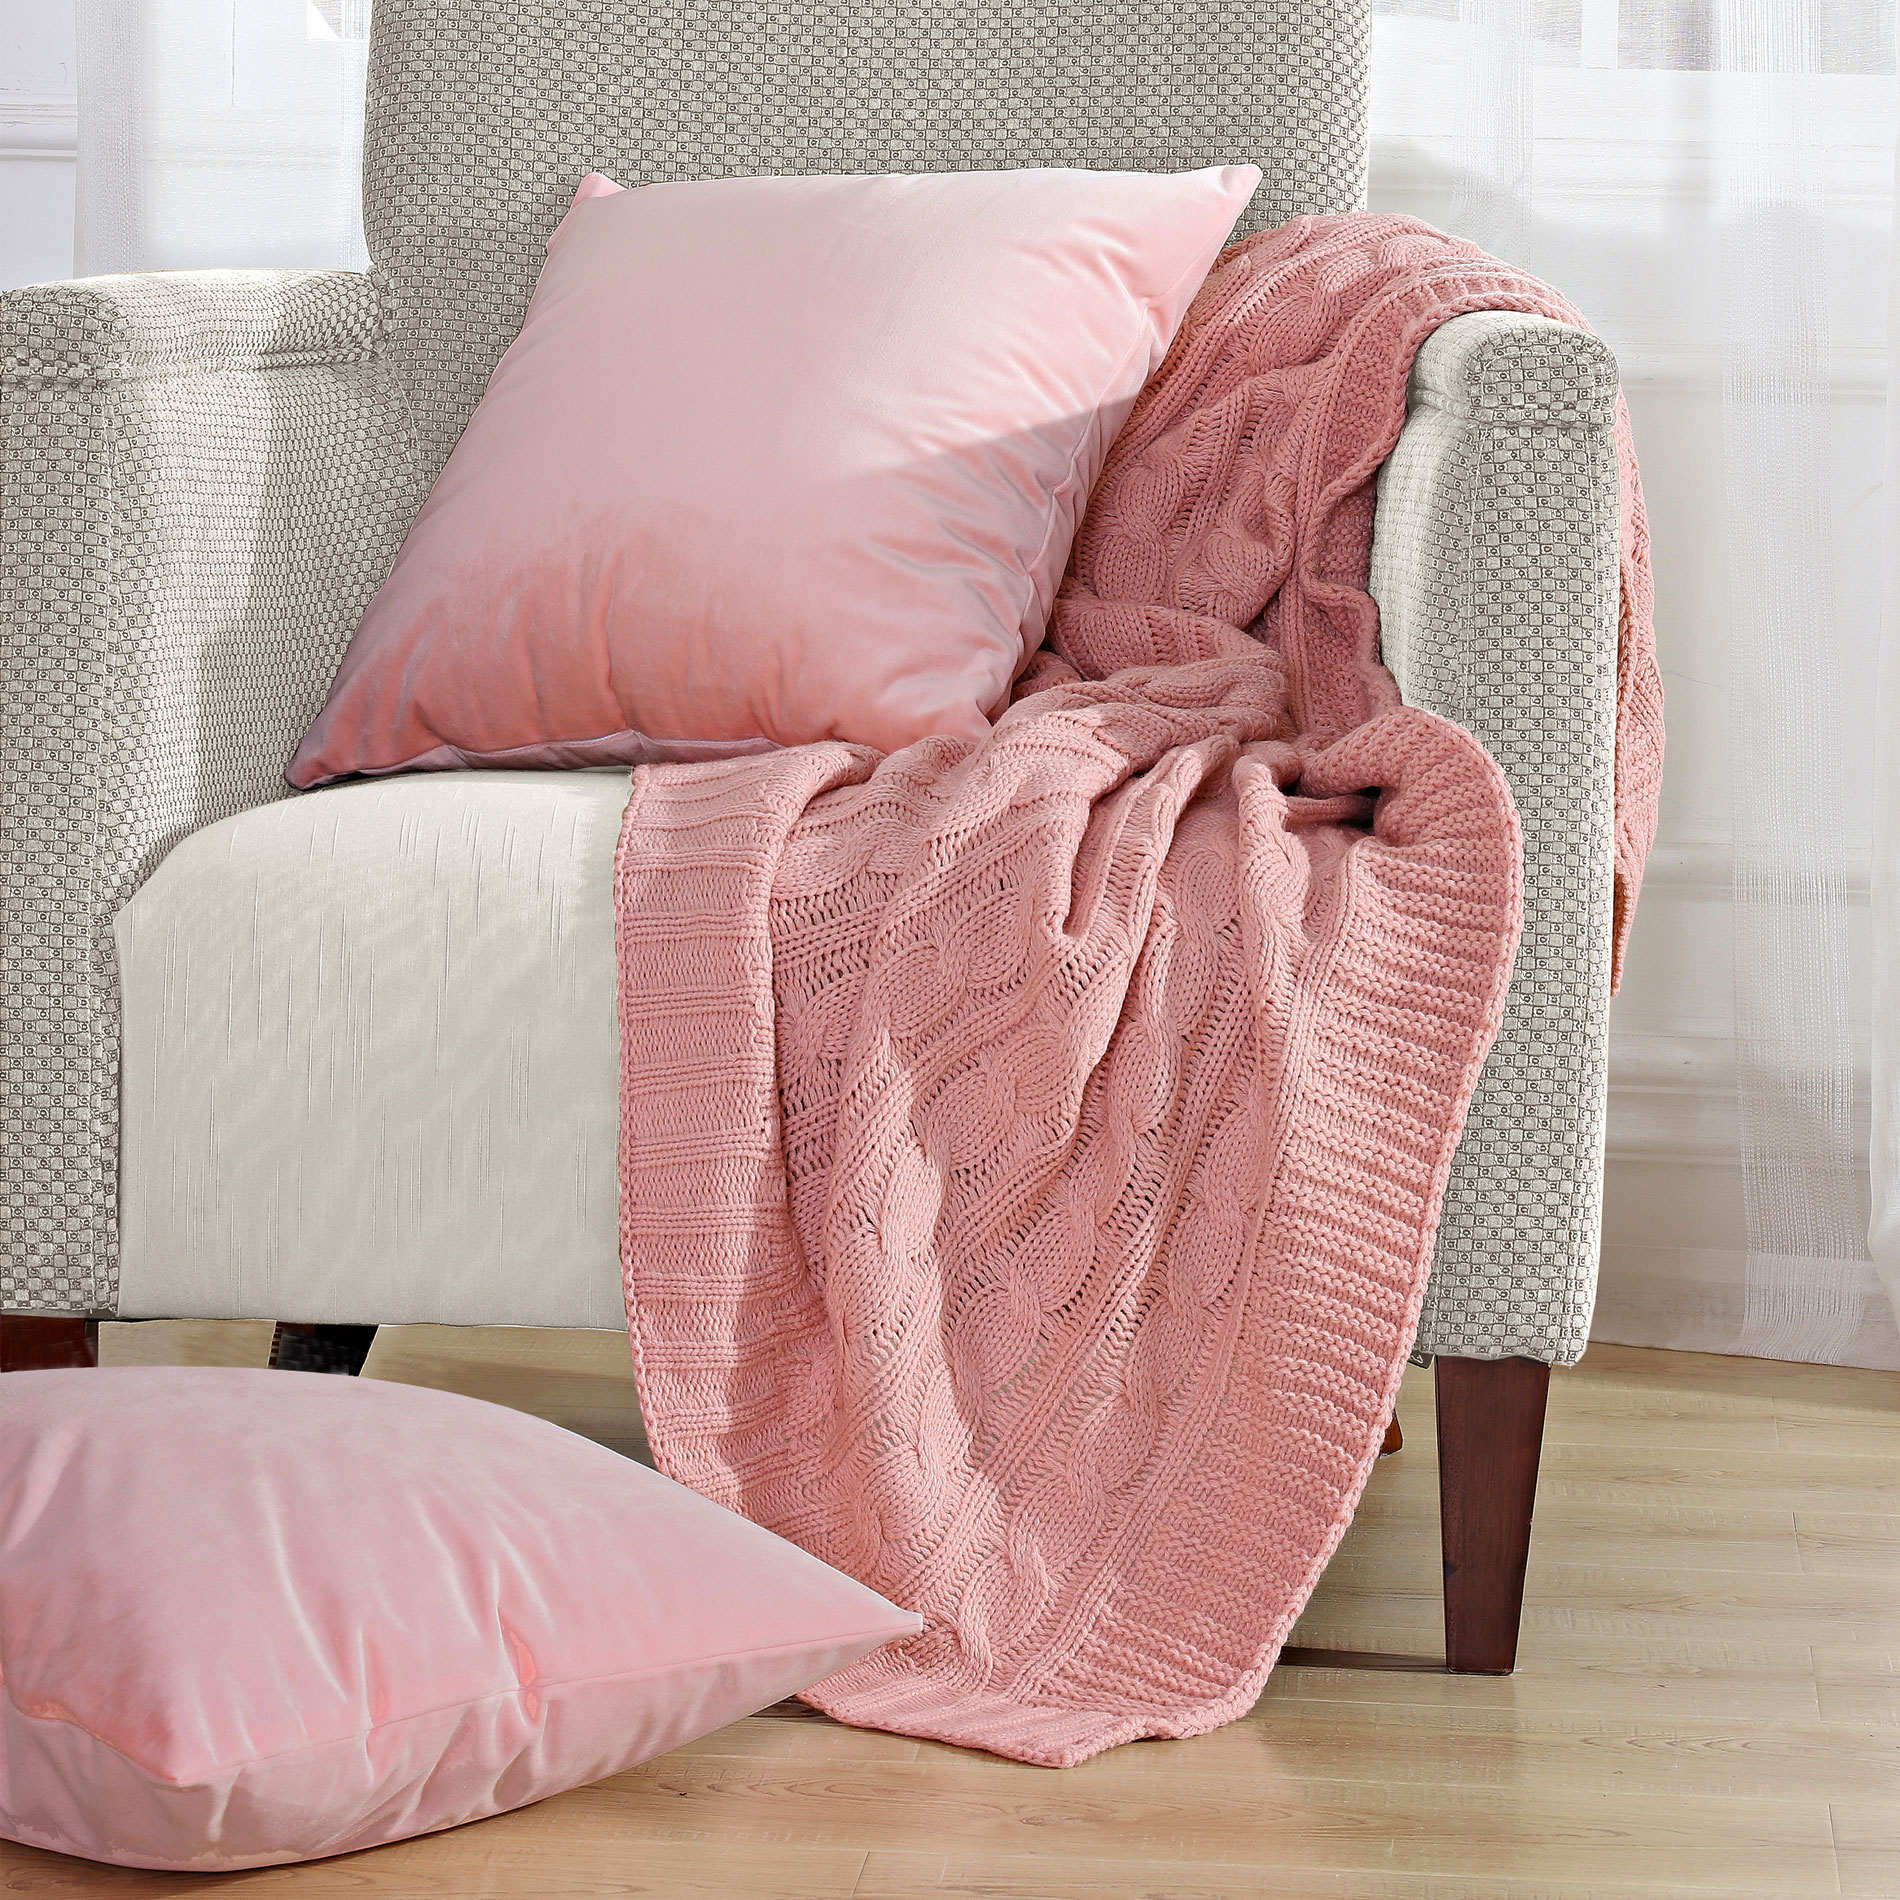 Throw Pillow And Blanket Set : 3 Piece Throw Blanket and Throw Pillow Shell Sets - Blissful Comforts